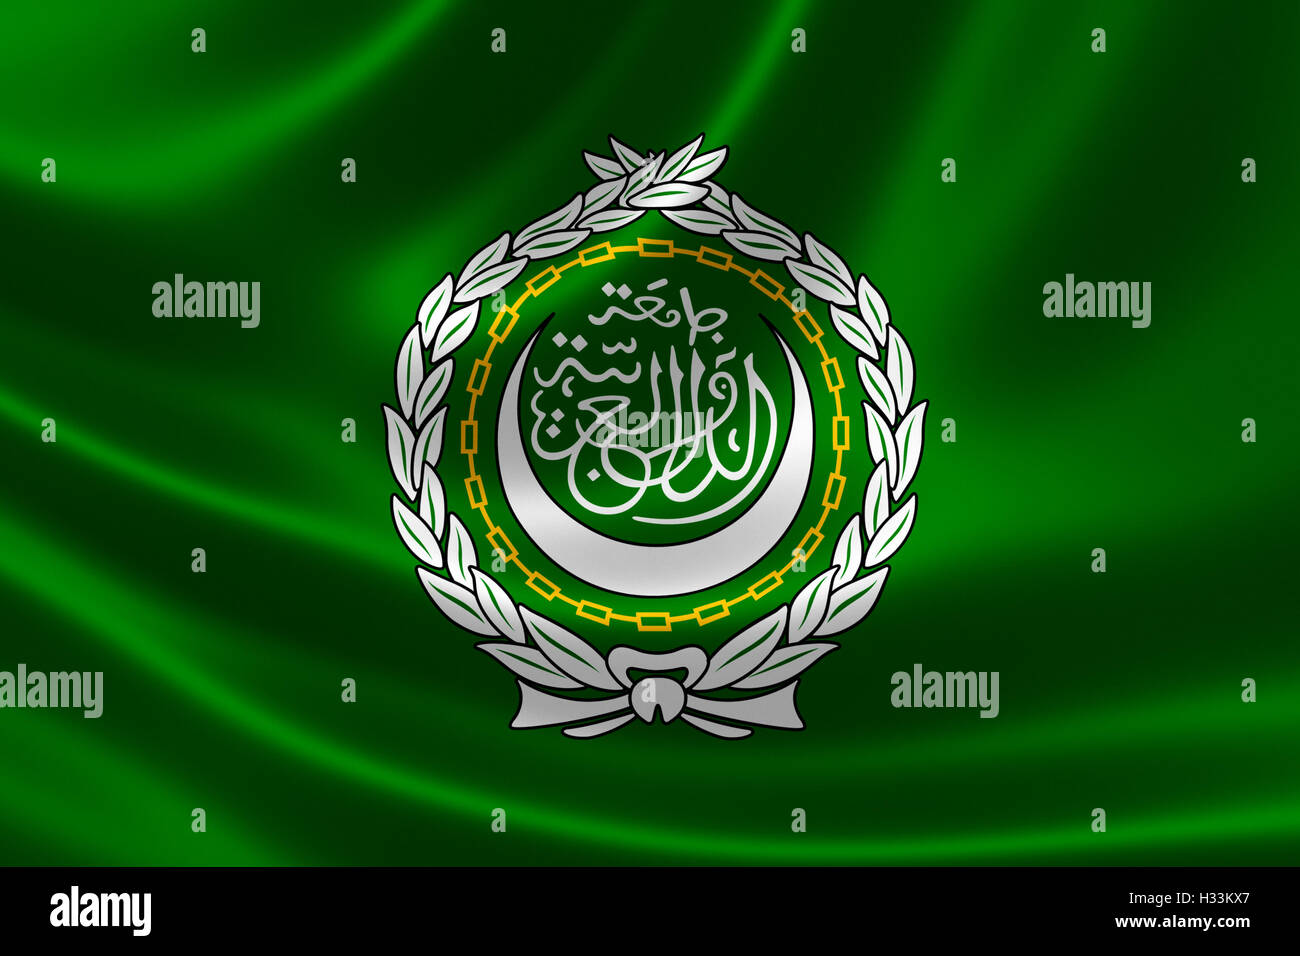 3D rendering of the flag of Arab League on satin texture. The league is a regional organization formed to promote - Stock Image